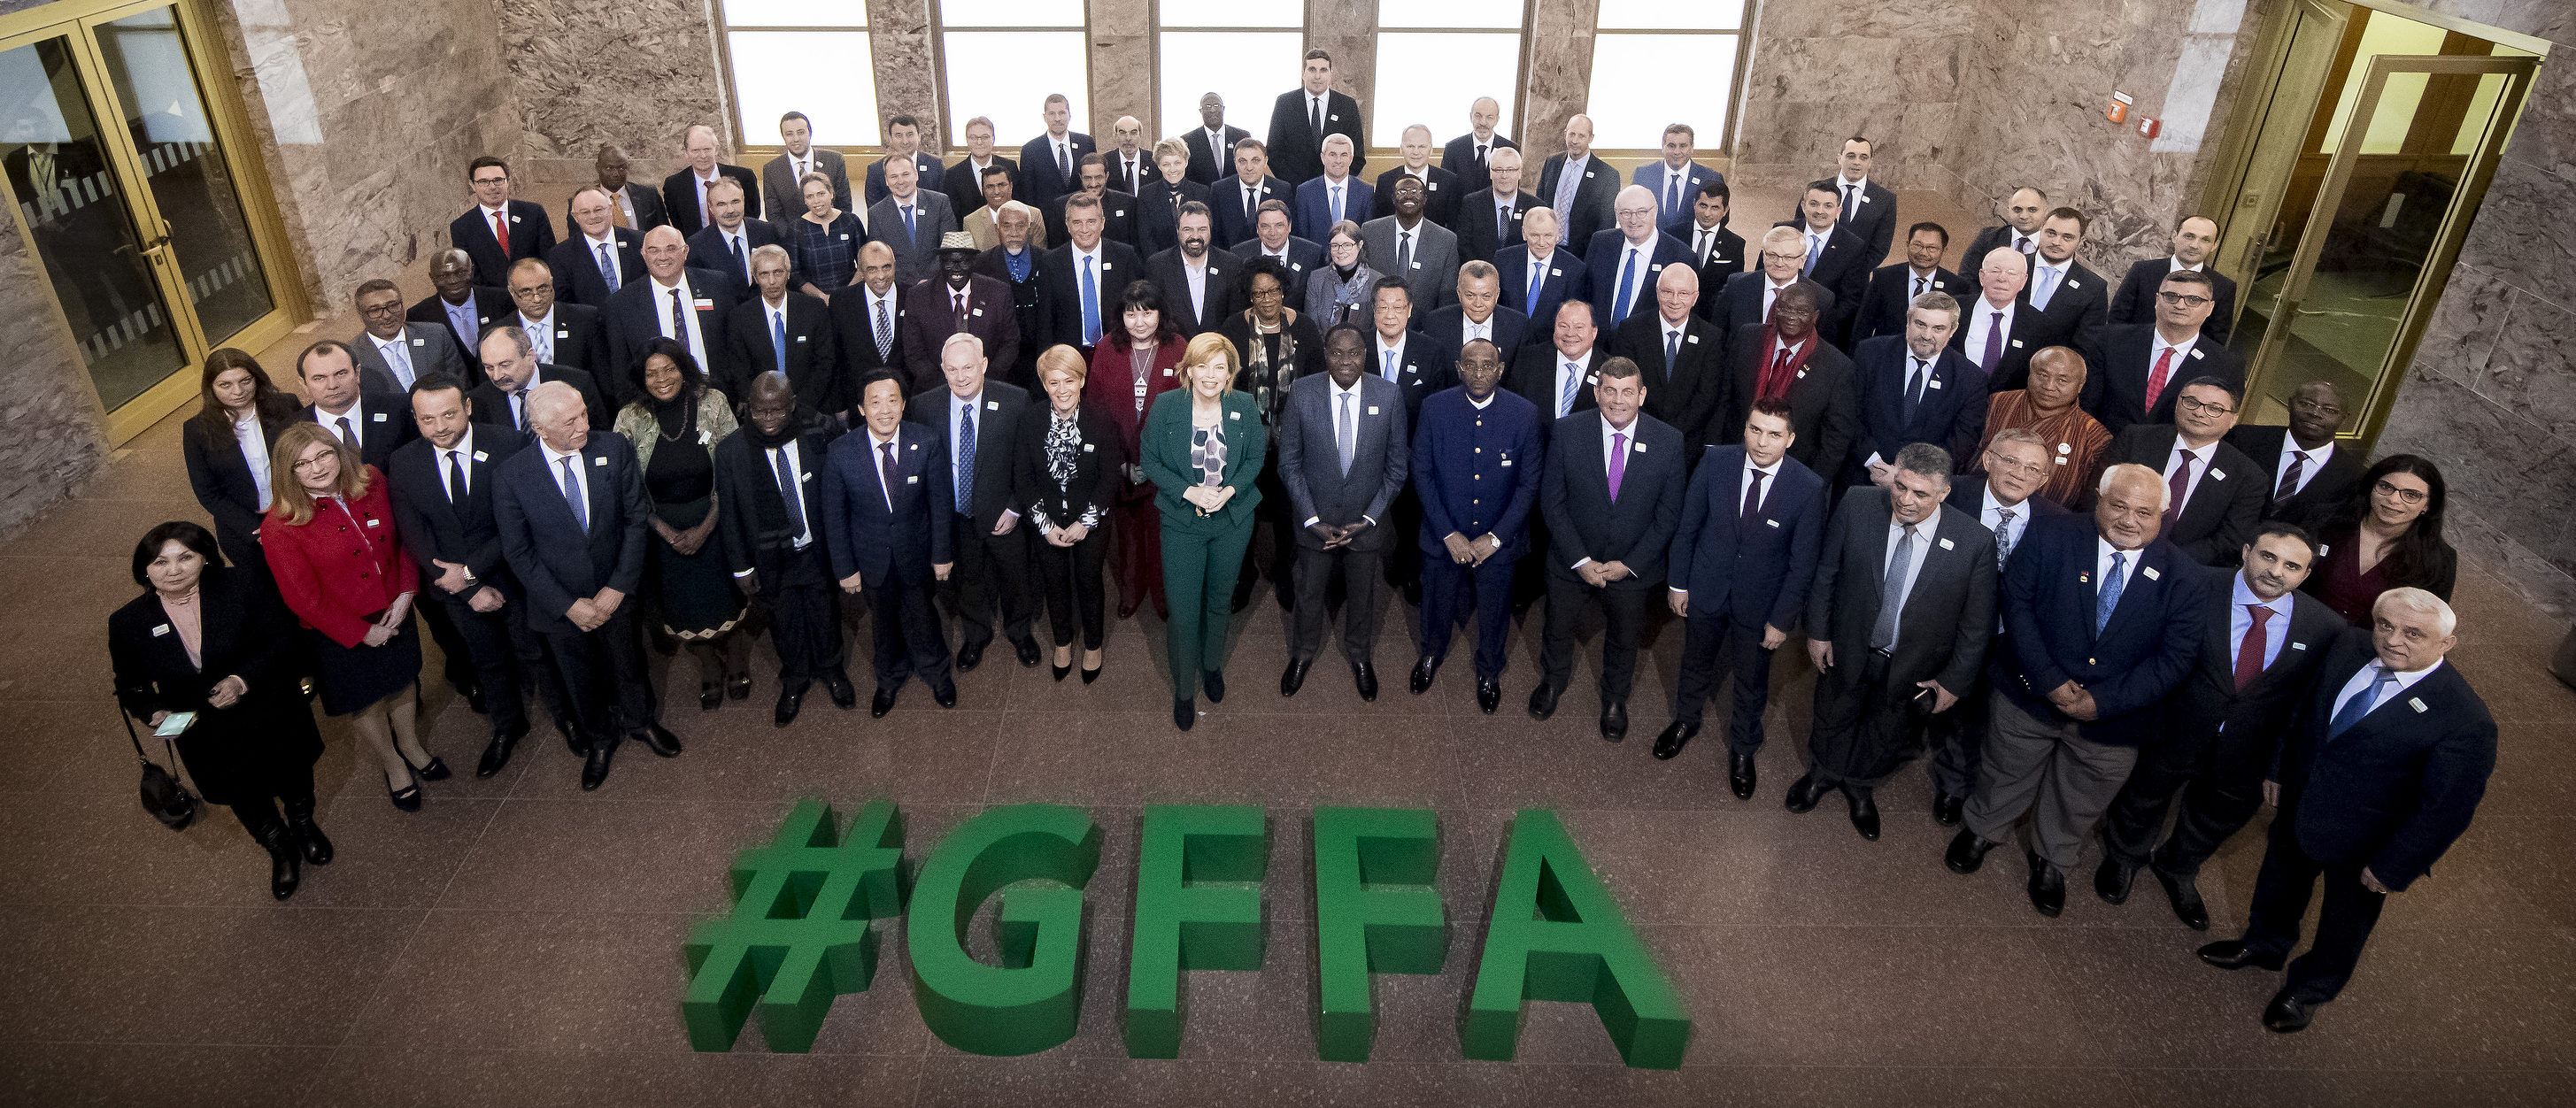 GFFA 2019 | Berlin  Agriculture Ministers´ Conference